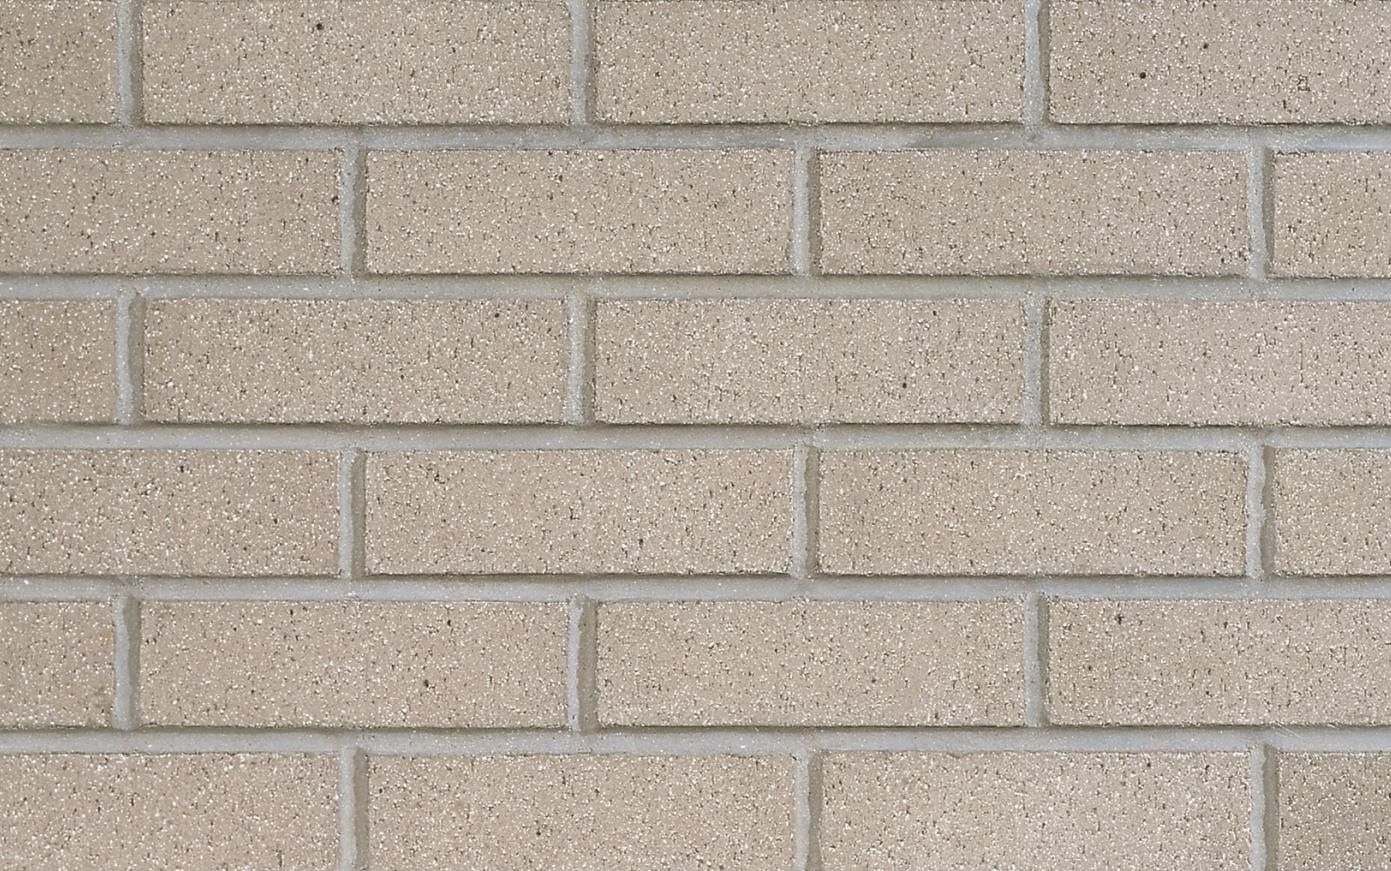 Platinum Brick is an Interstate Brick available from I-XL Masonry Supplies and is available in a variety of sizes, shapes and textures.